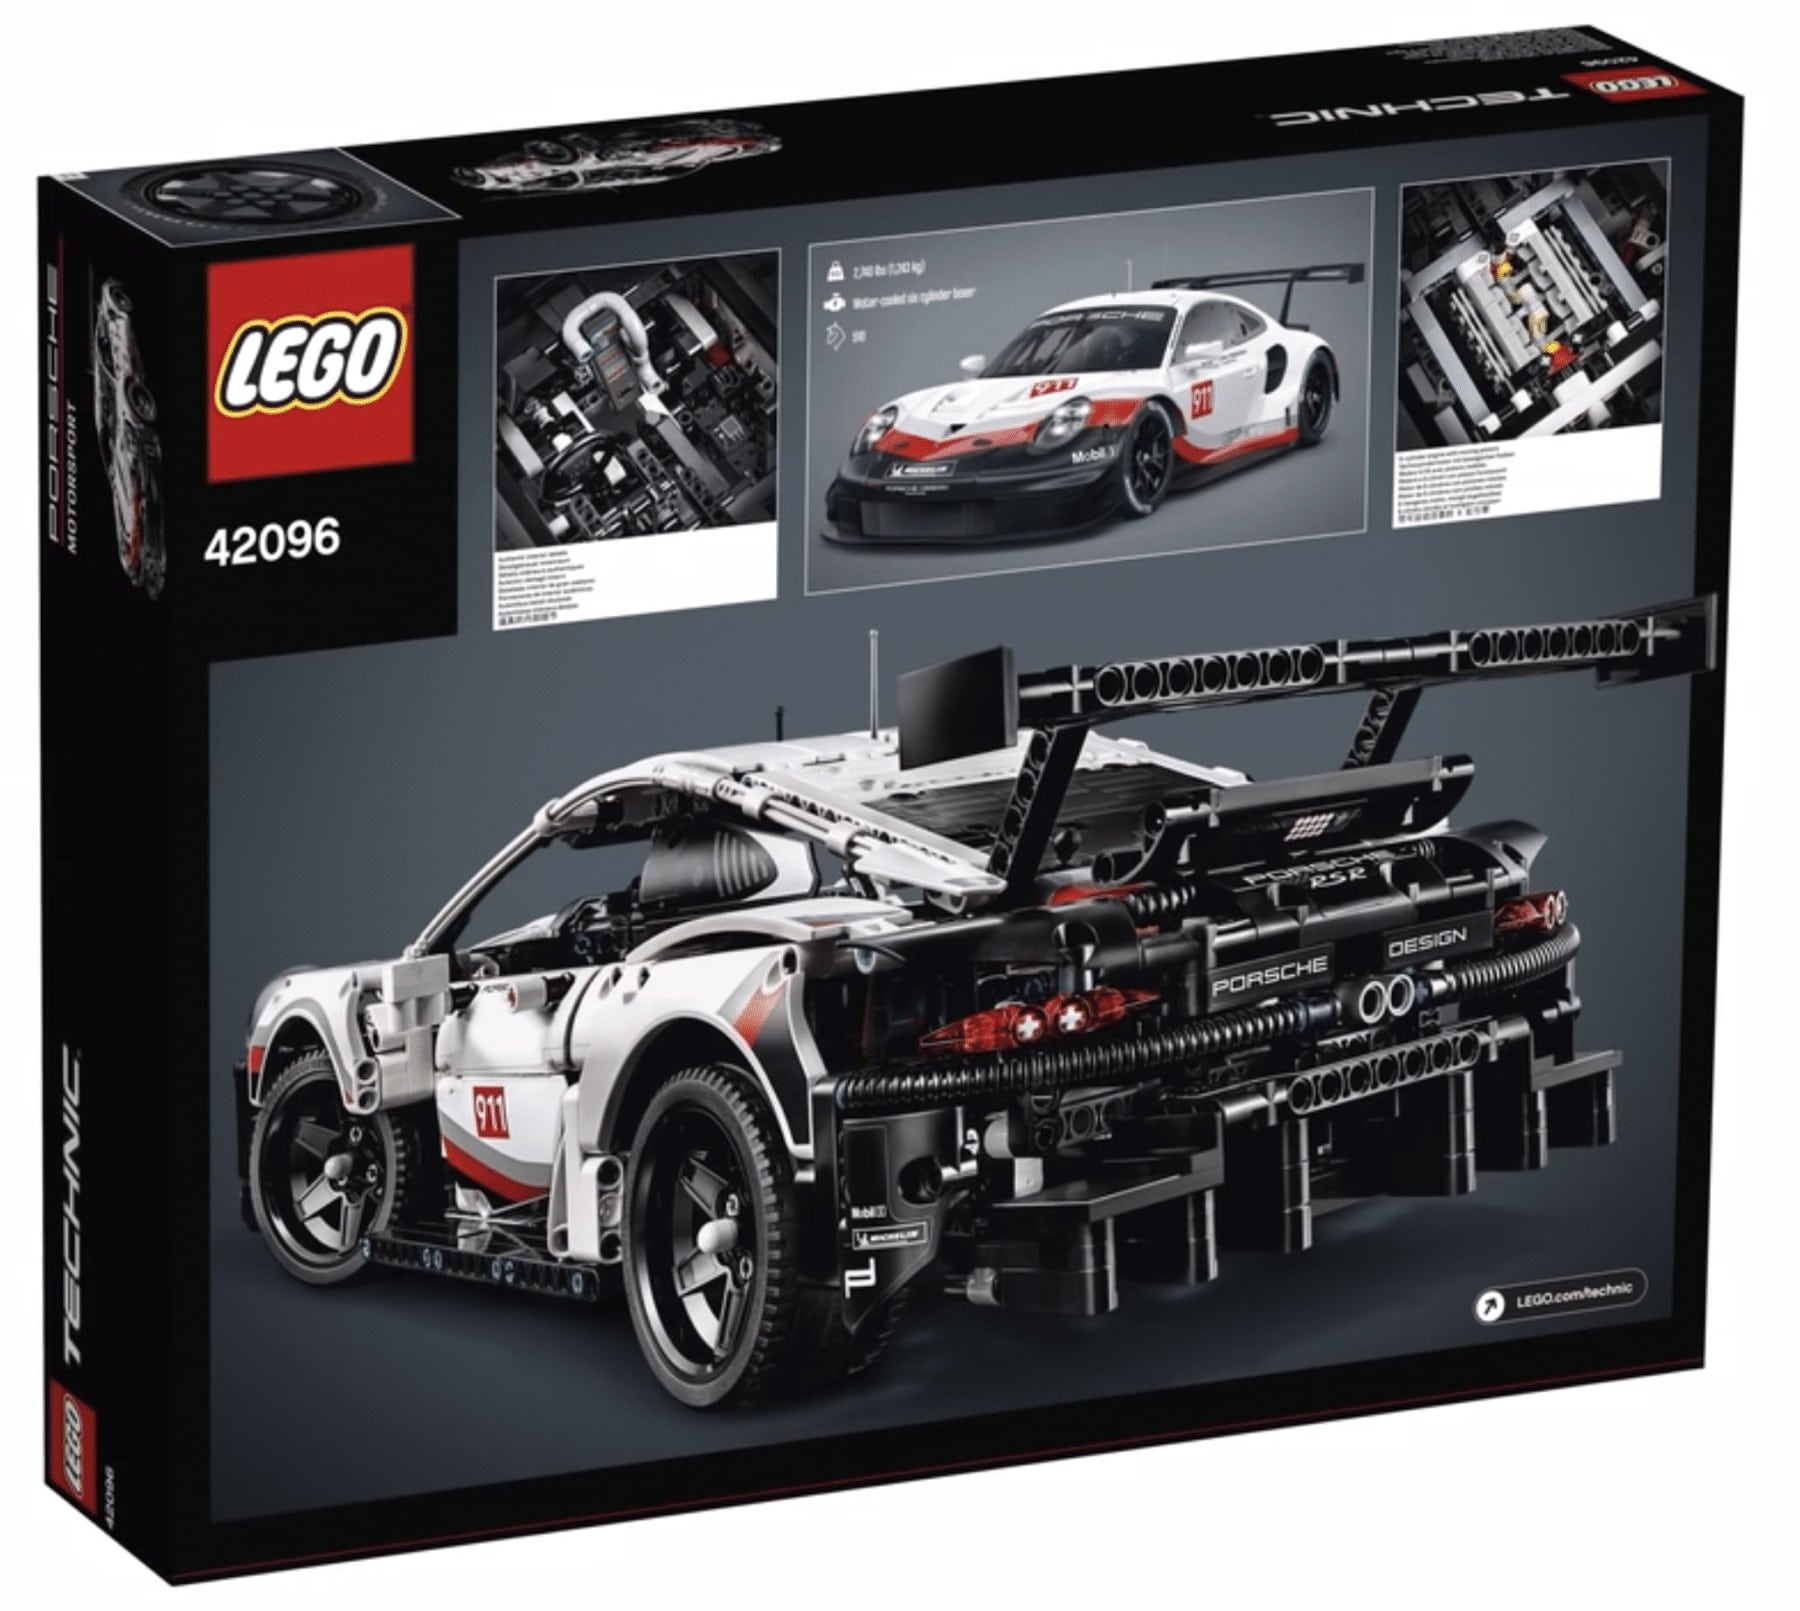 lego 42096 technic porsche 911 rsr erste bilder aufgetaucht. Black Bedroom Furniture Sets. Home Design Ideas